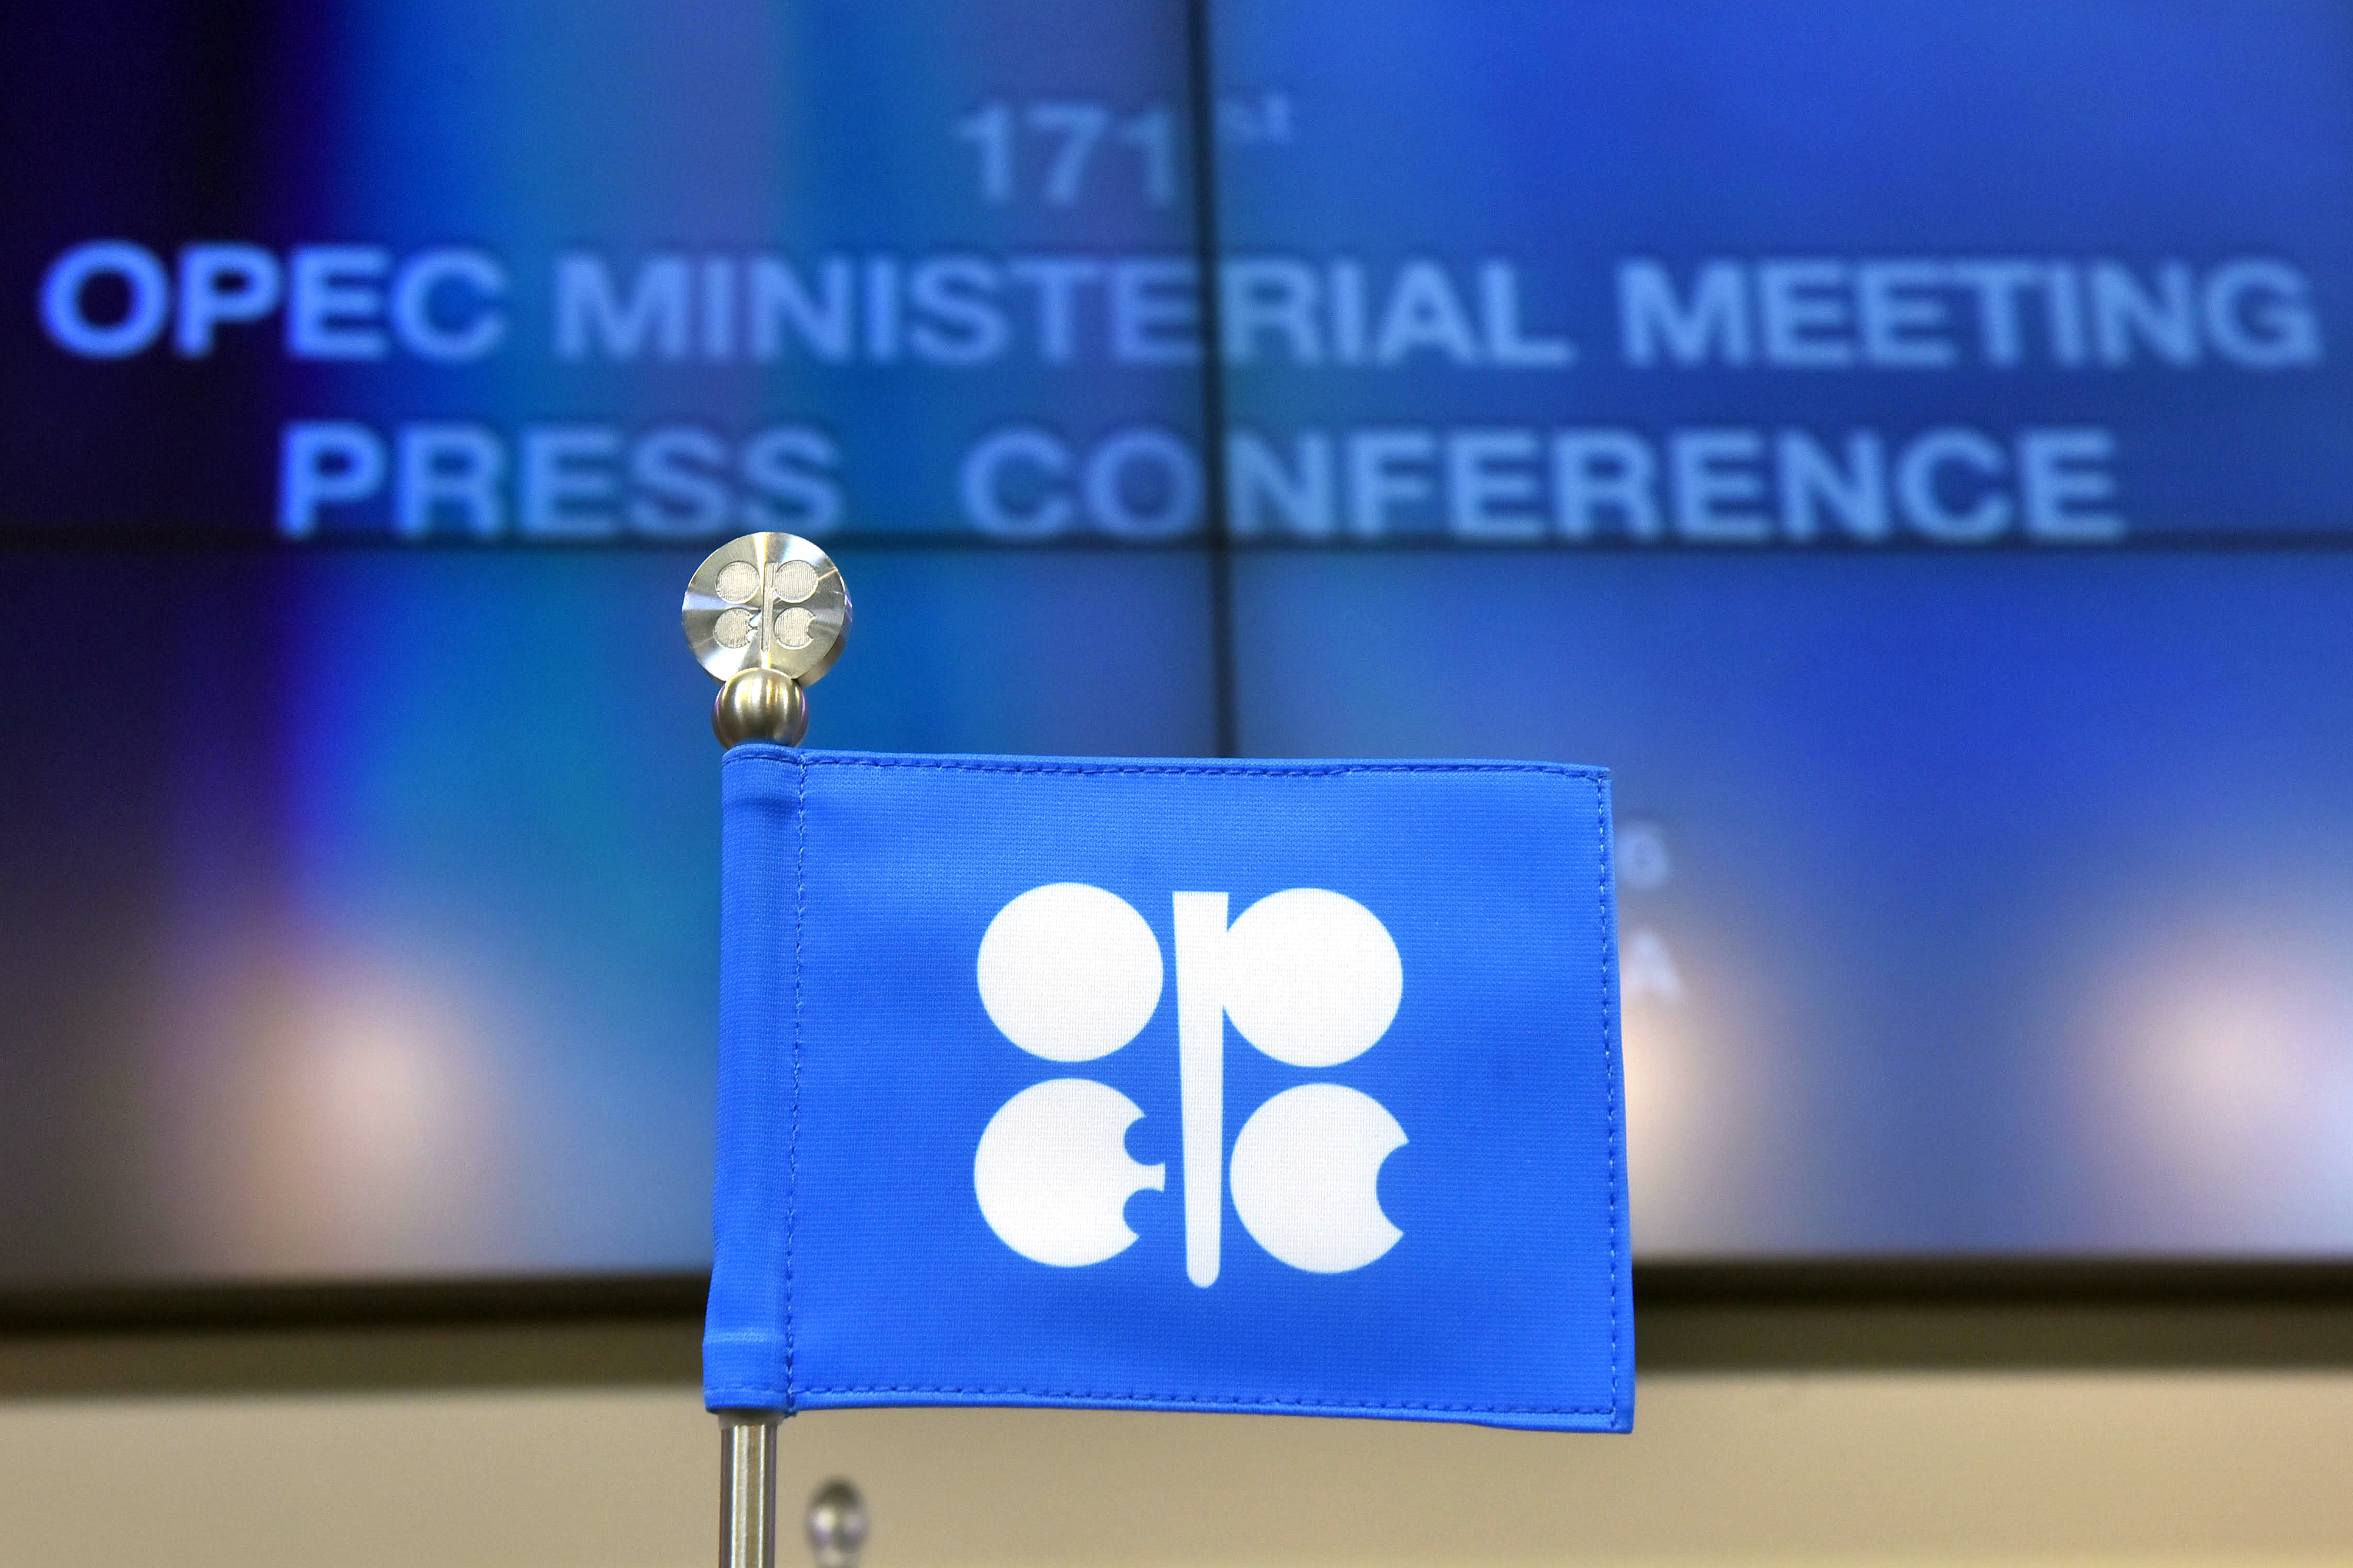 An OPEC branded flag sits on a table ahead of the 171st Organization of Petroleum Exporting Countries (OPEC) meeting in Vienna, Austria, on Wednesday, Nov. 30, 2016.